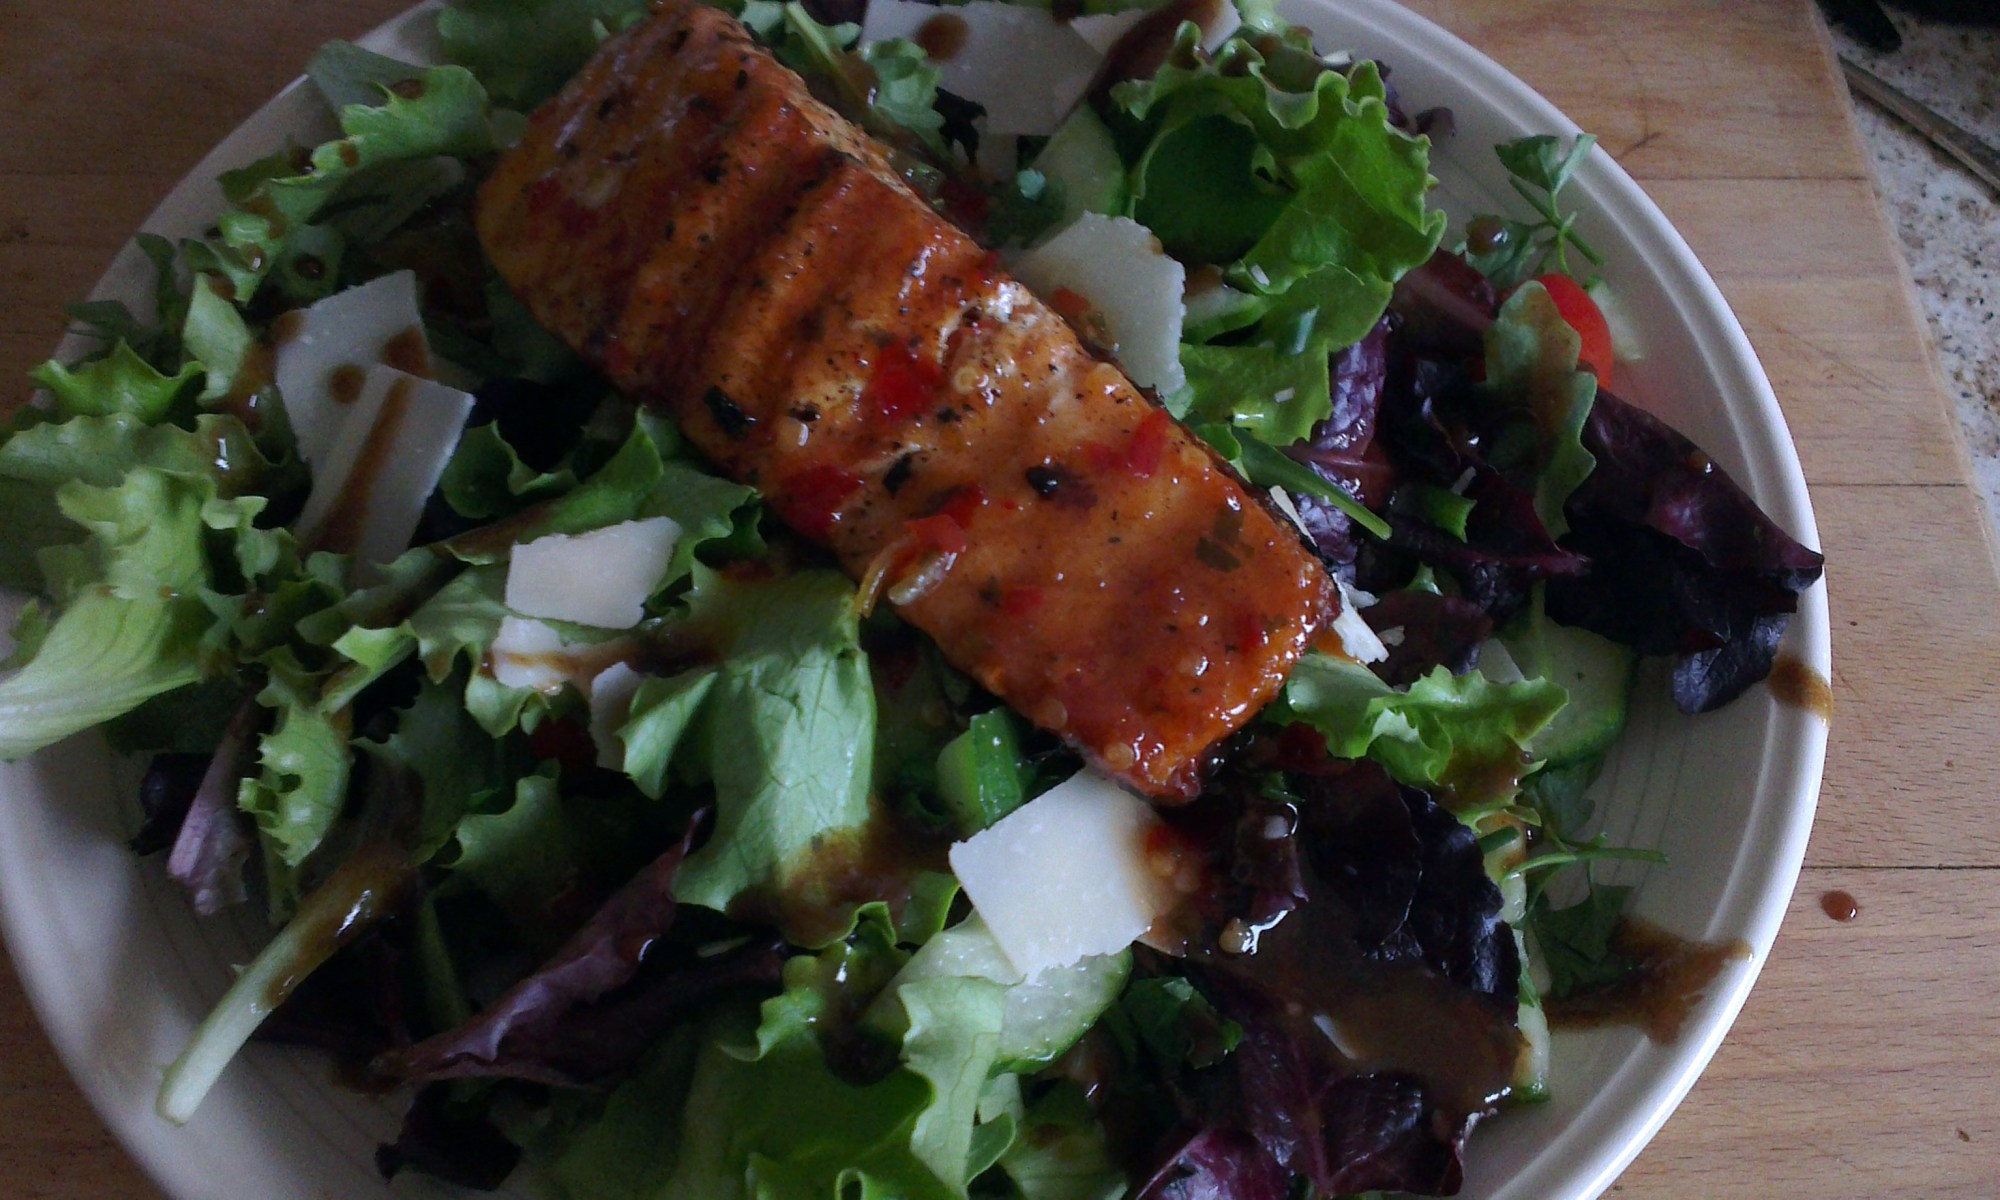 Grilled salmon with sweet chilli on salad.